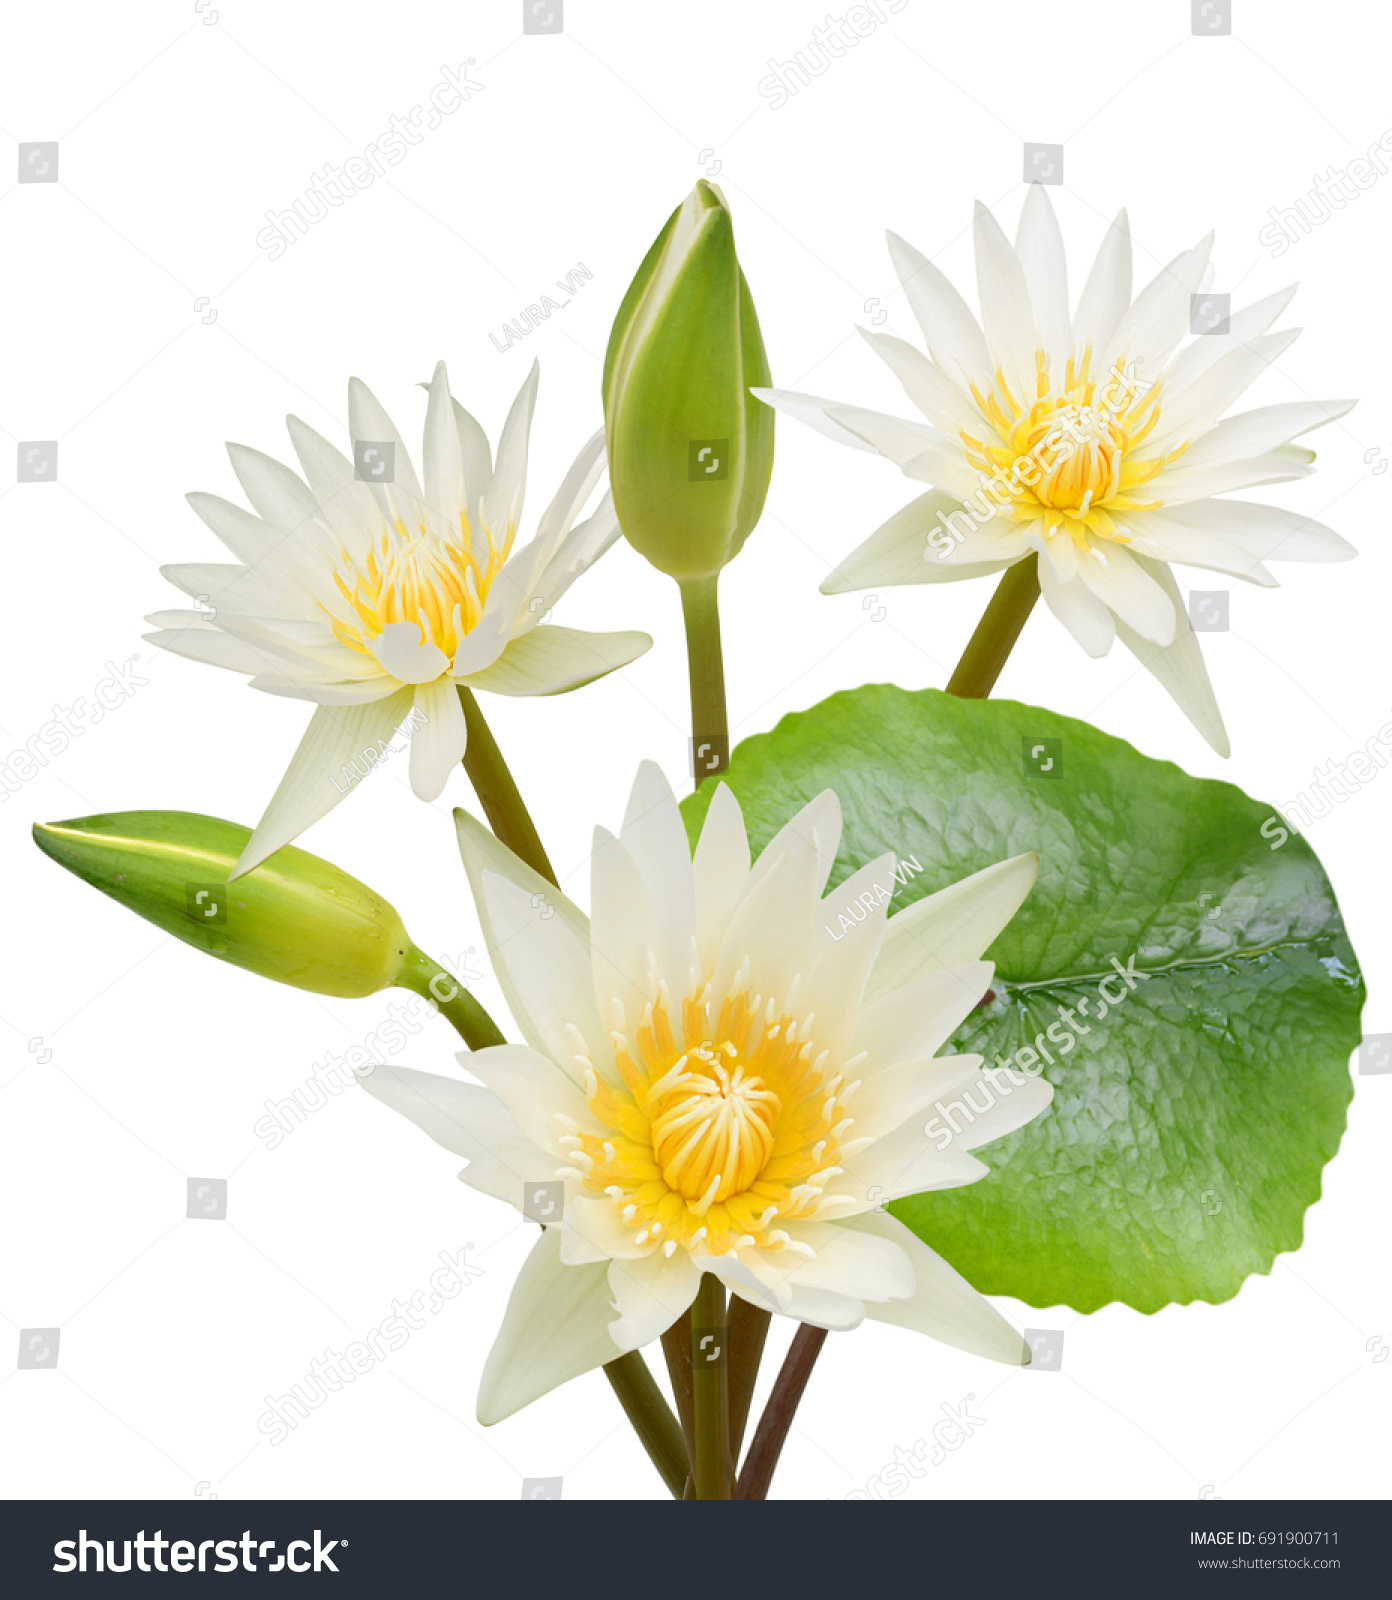 White water lily flower bouquet isolated stock photo edit now white water lily flower bouquet isolated on white background izmirmasajfo